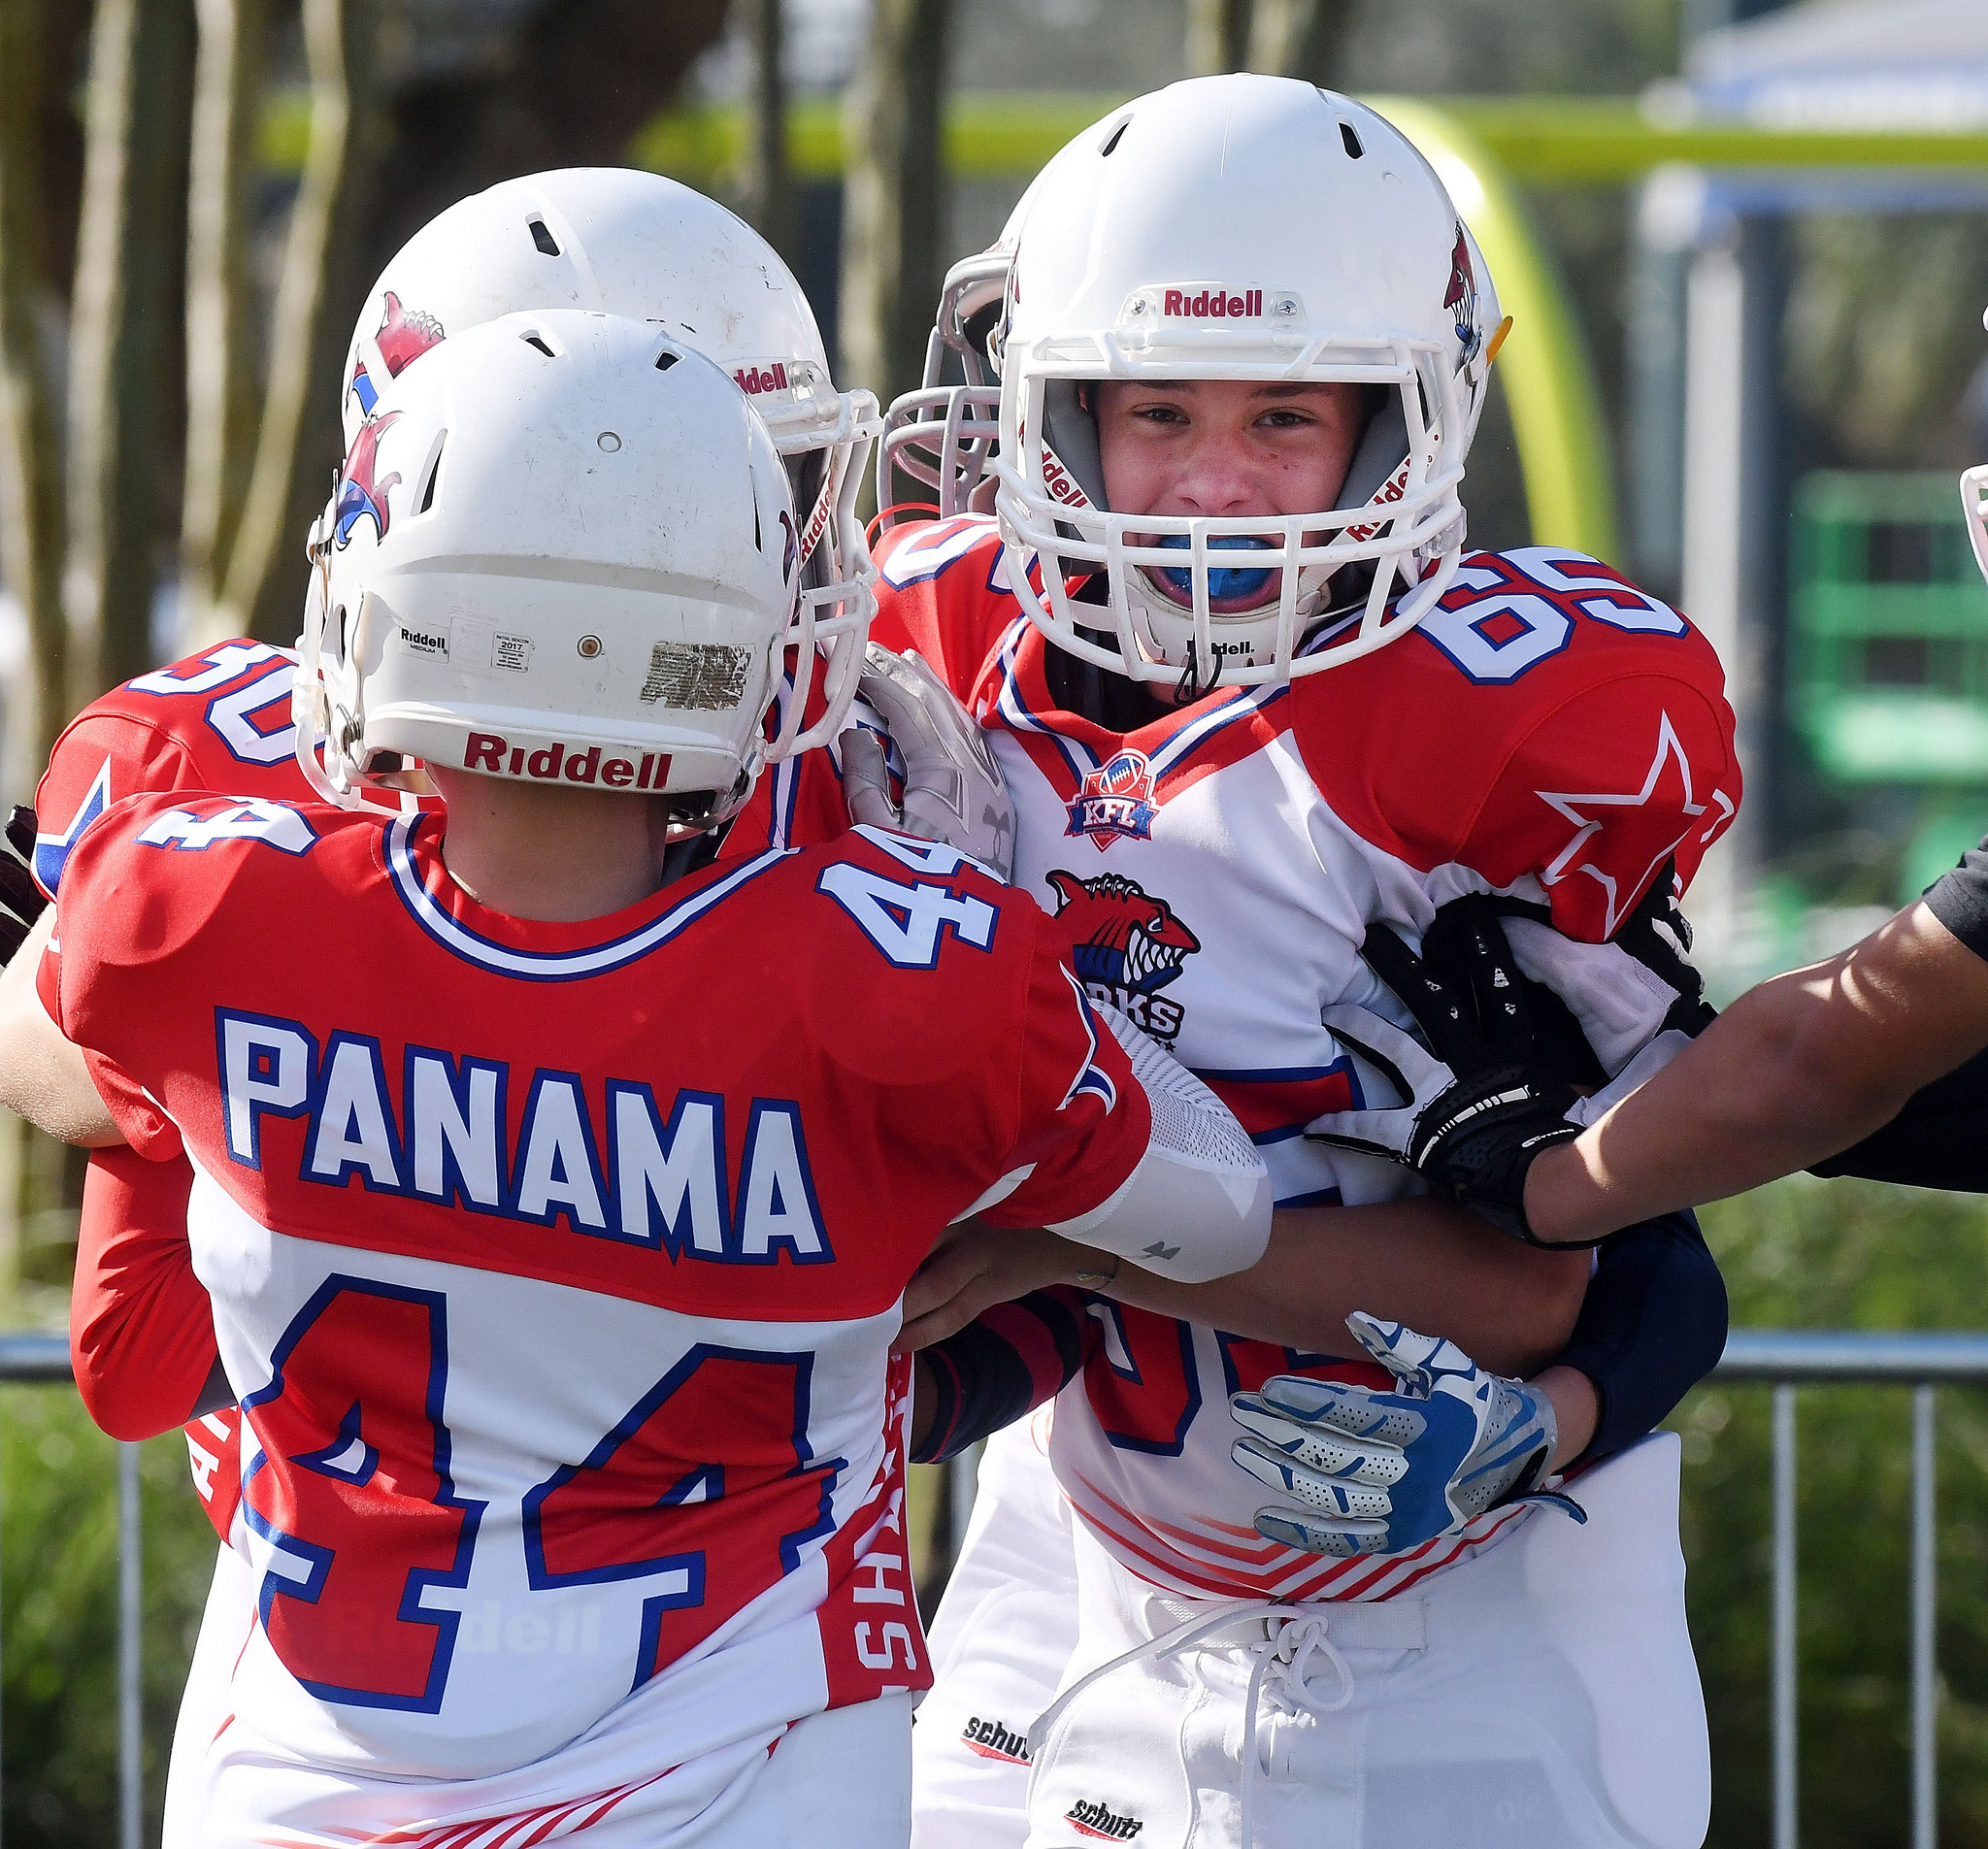 f1c1805f686 The Varsity and Junior Varsity teams from Panama emerged triumphant from the  ninth annual Pop Warner Super Bowl international games played at the ESPN  Wide ...